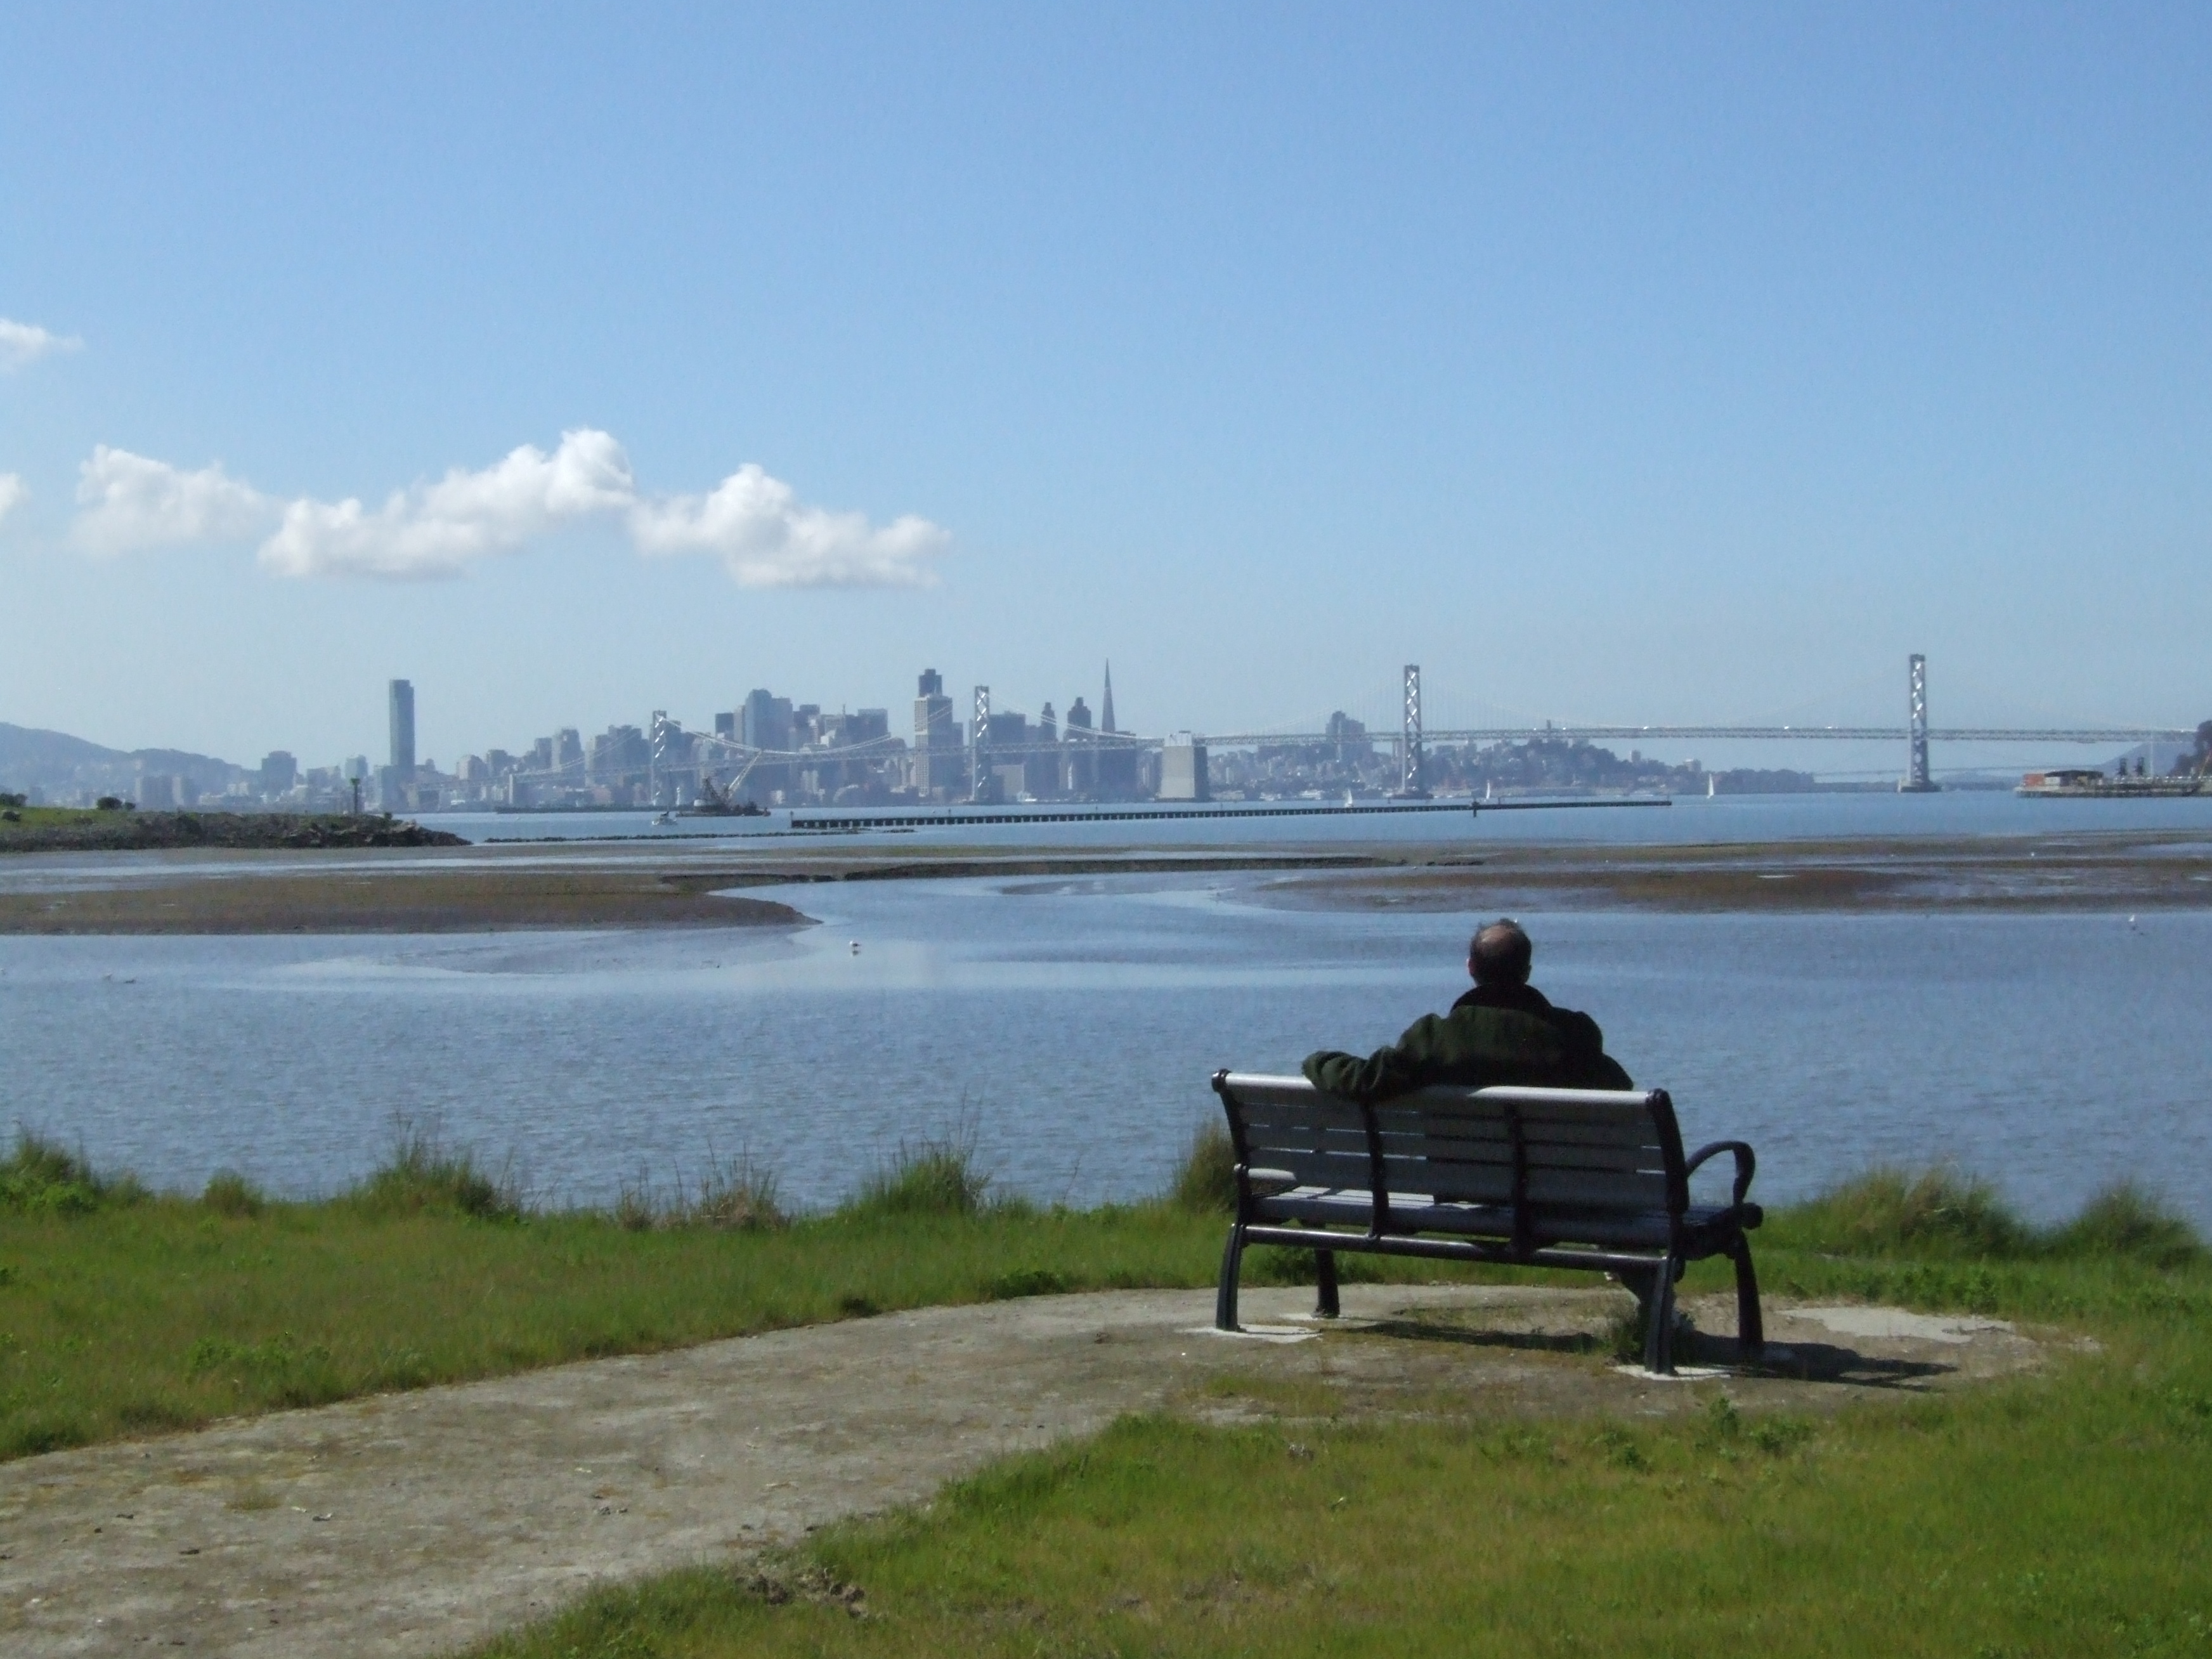 Peaceful: San Francisco from the Port of Oakland